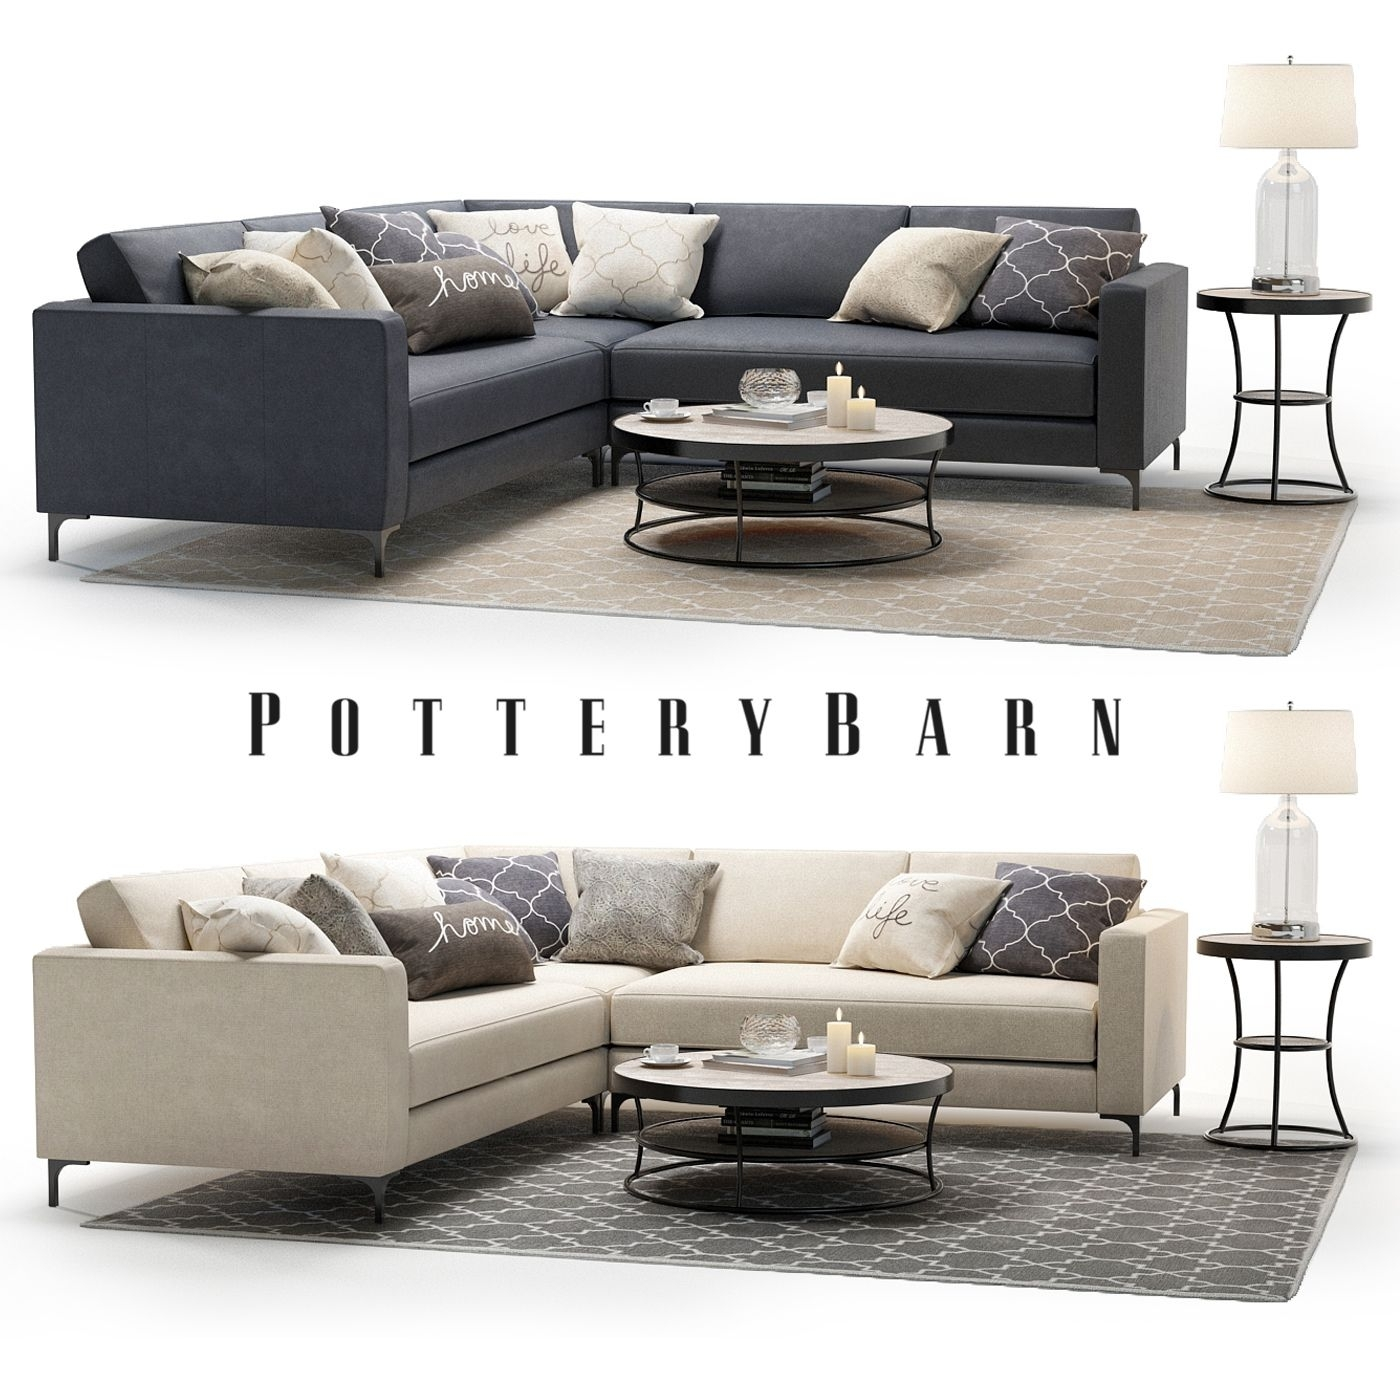 3D Model – Pottery Barn – Jake Sectional Sofa With Bartlett With Pottery Barn Sectional Sofas (View 5 of 10)